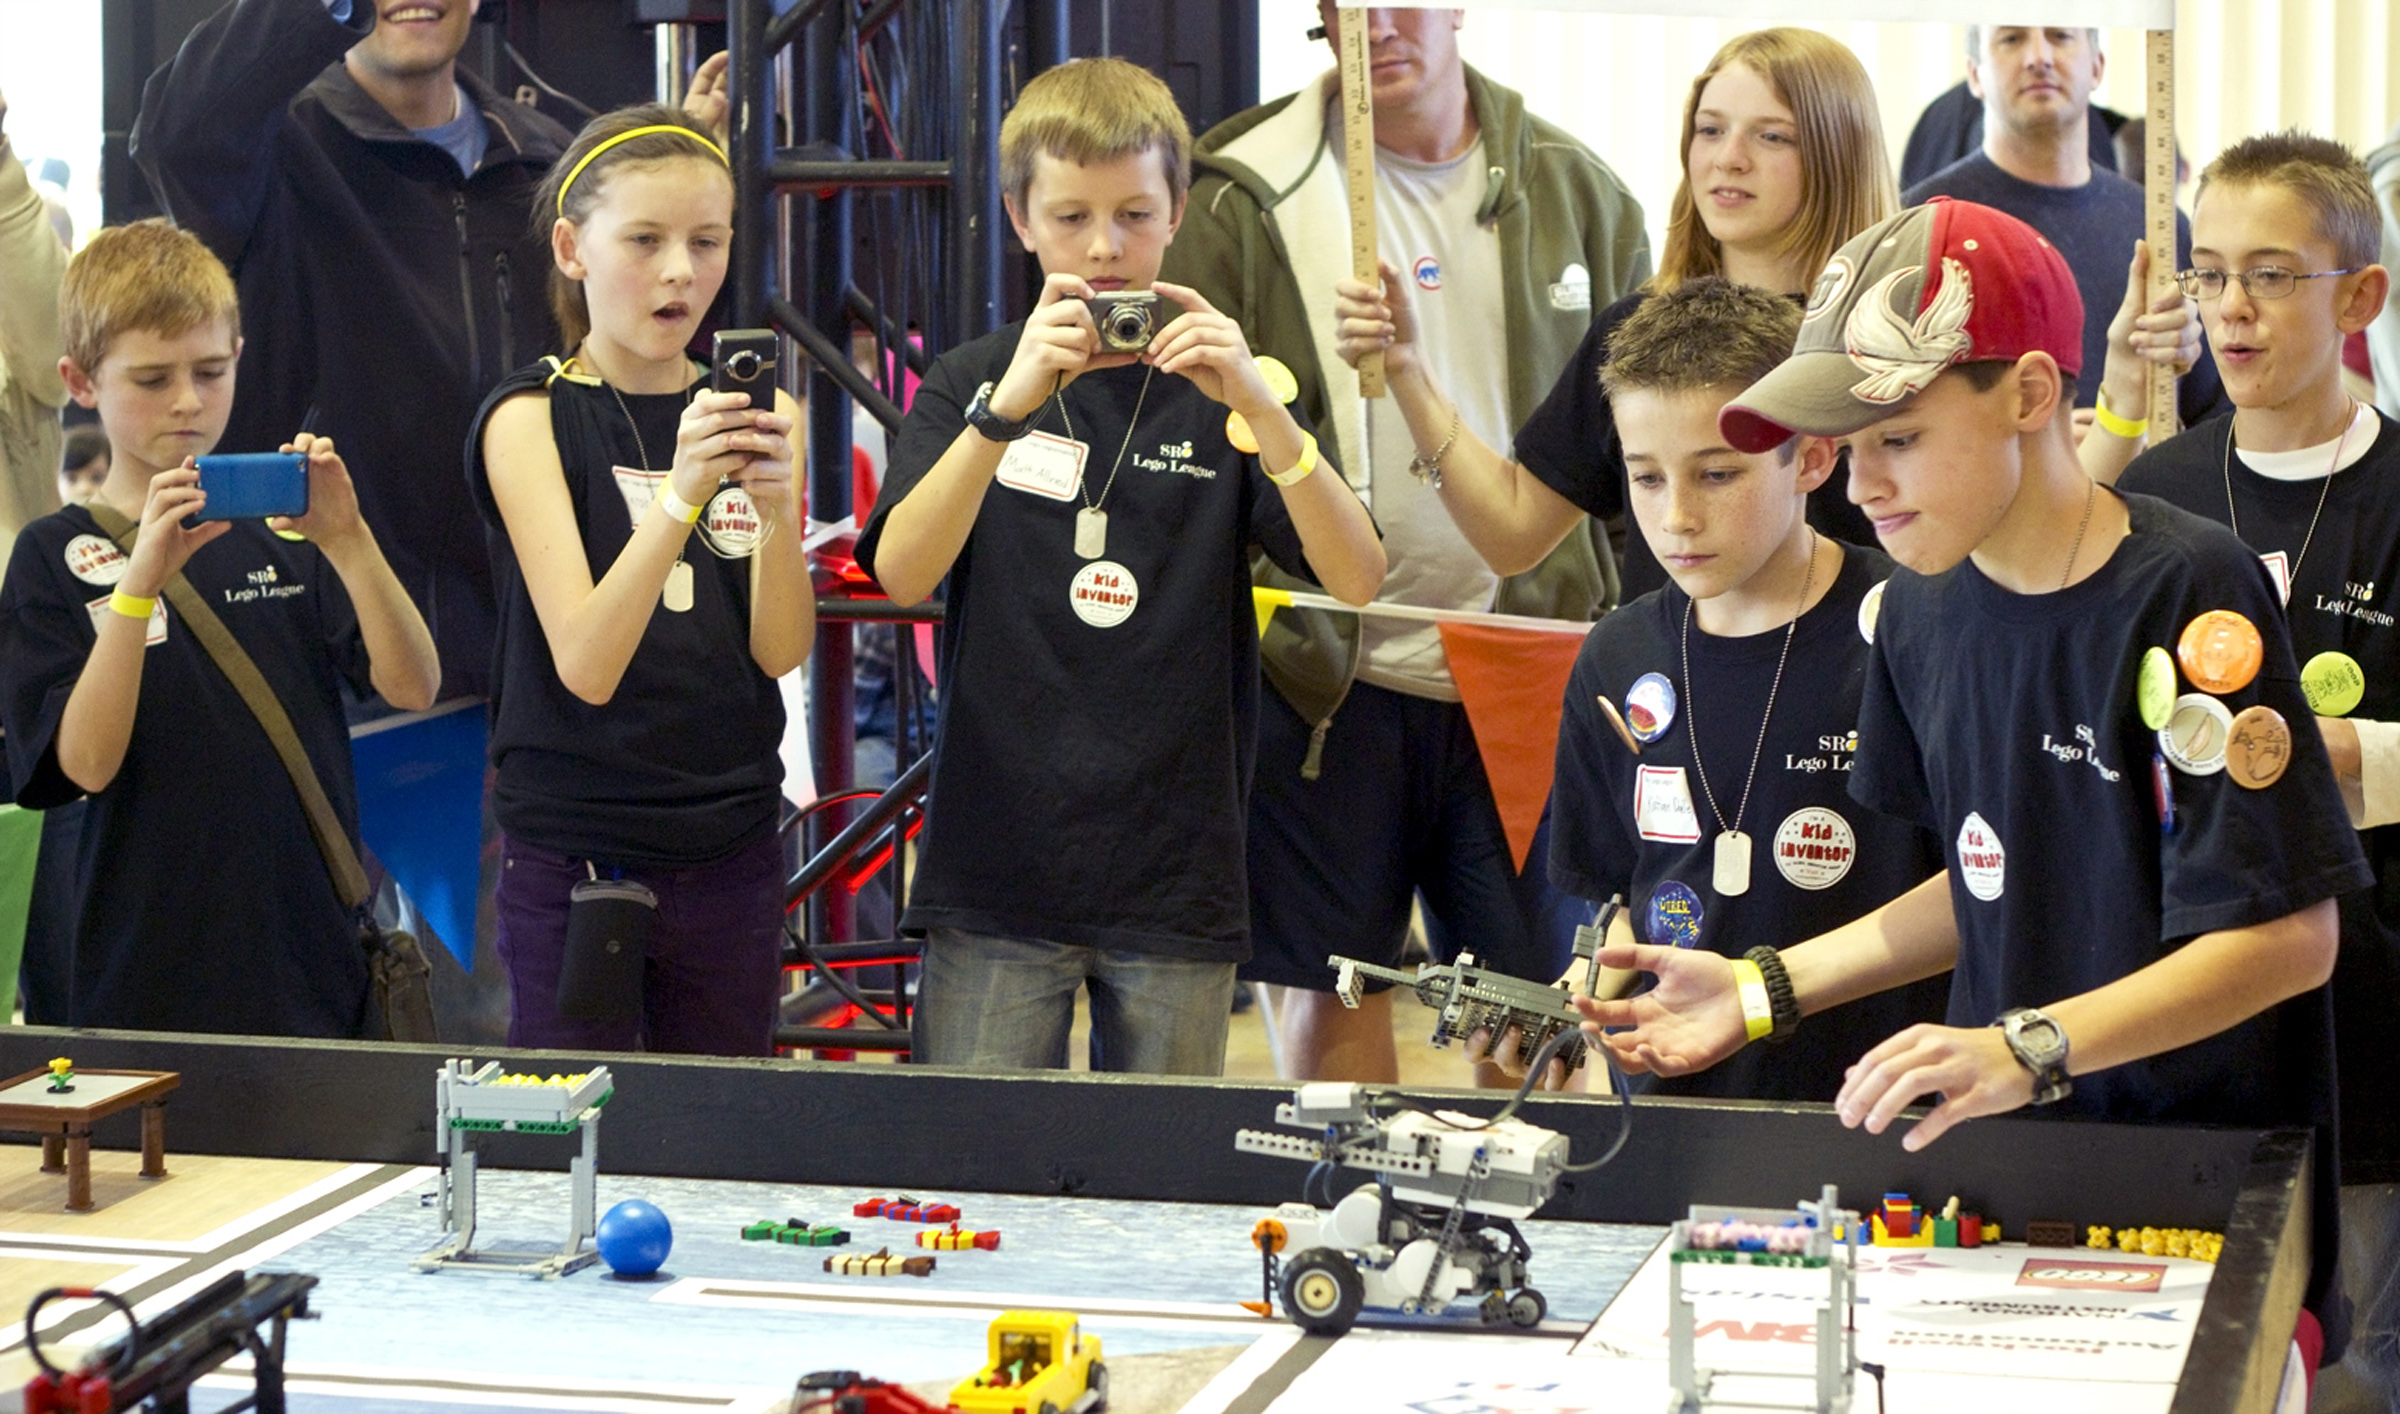 Kids take part in Utah FIRST LEGO league competition.